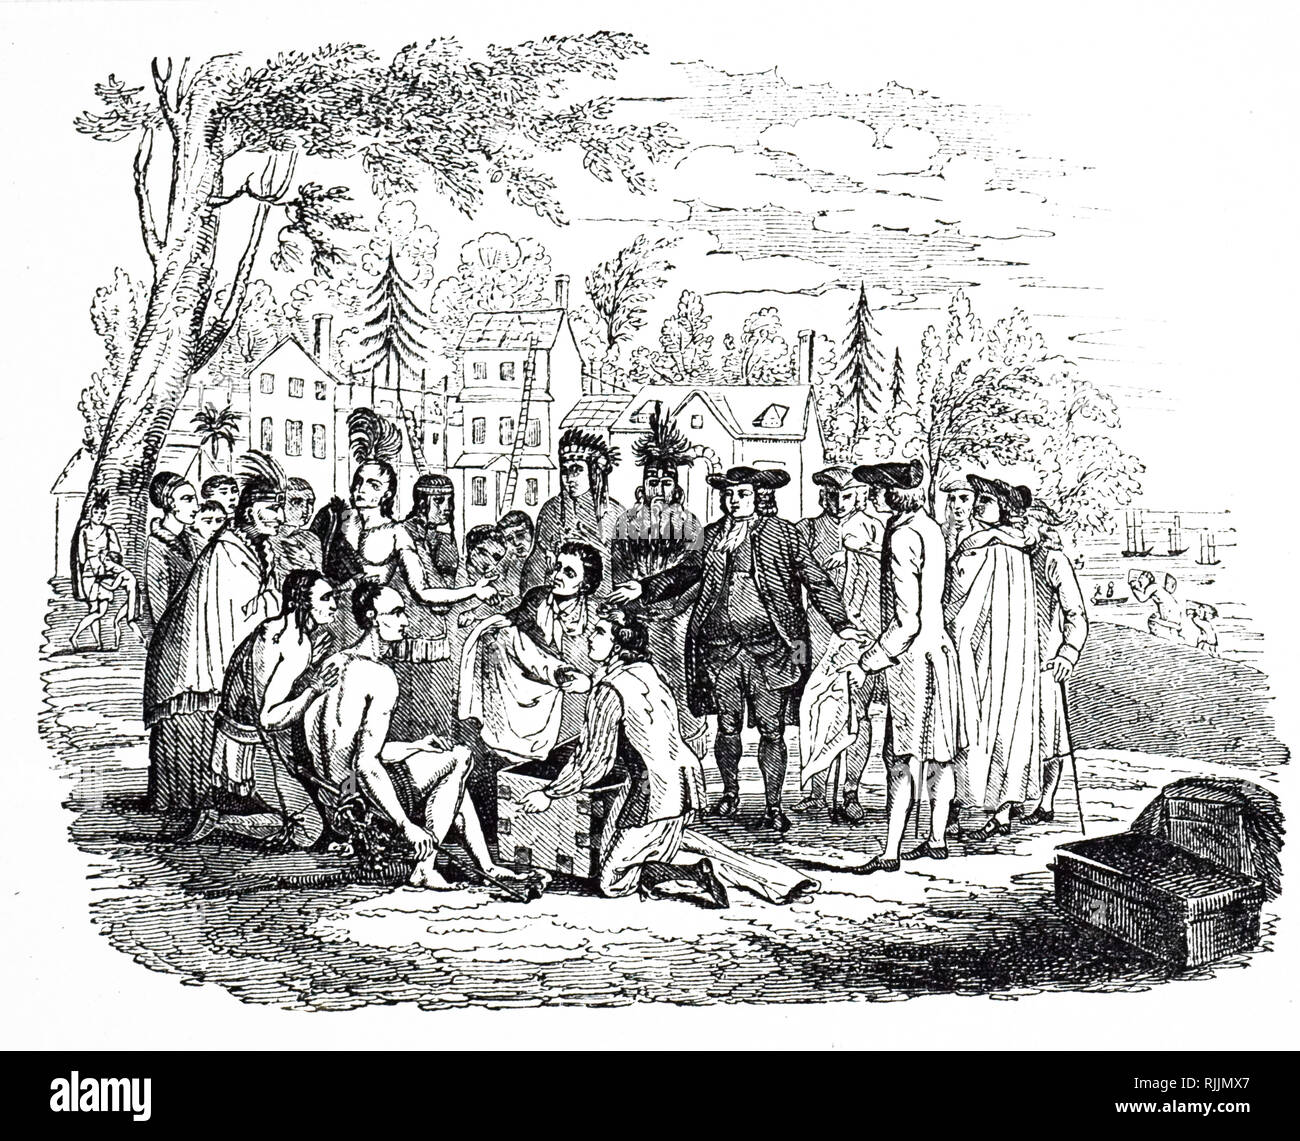 An engraving depicting William Penn meeting the Native Americans. Sir William Penn (1644-1718) an English, real estate entrepreneur, philosopher, early Quaker, and founder of the English North American colony the Province of Pennsylvania. Dated 19th century Stock Photo